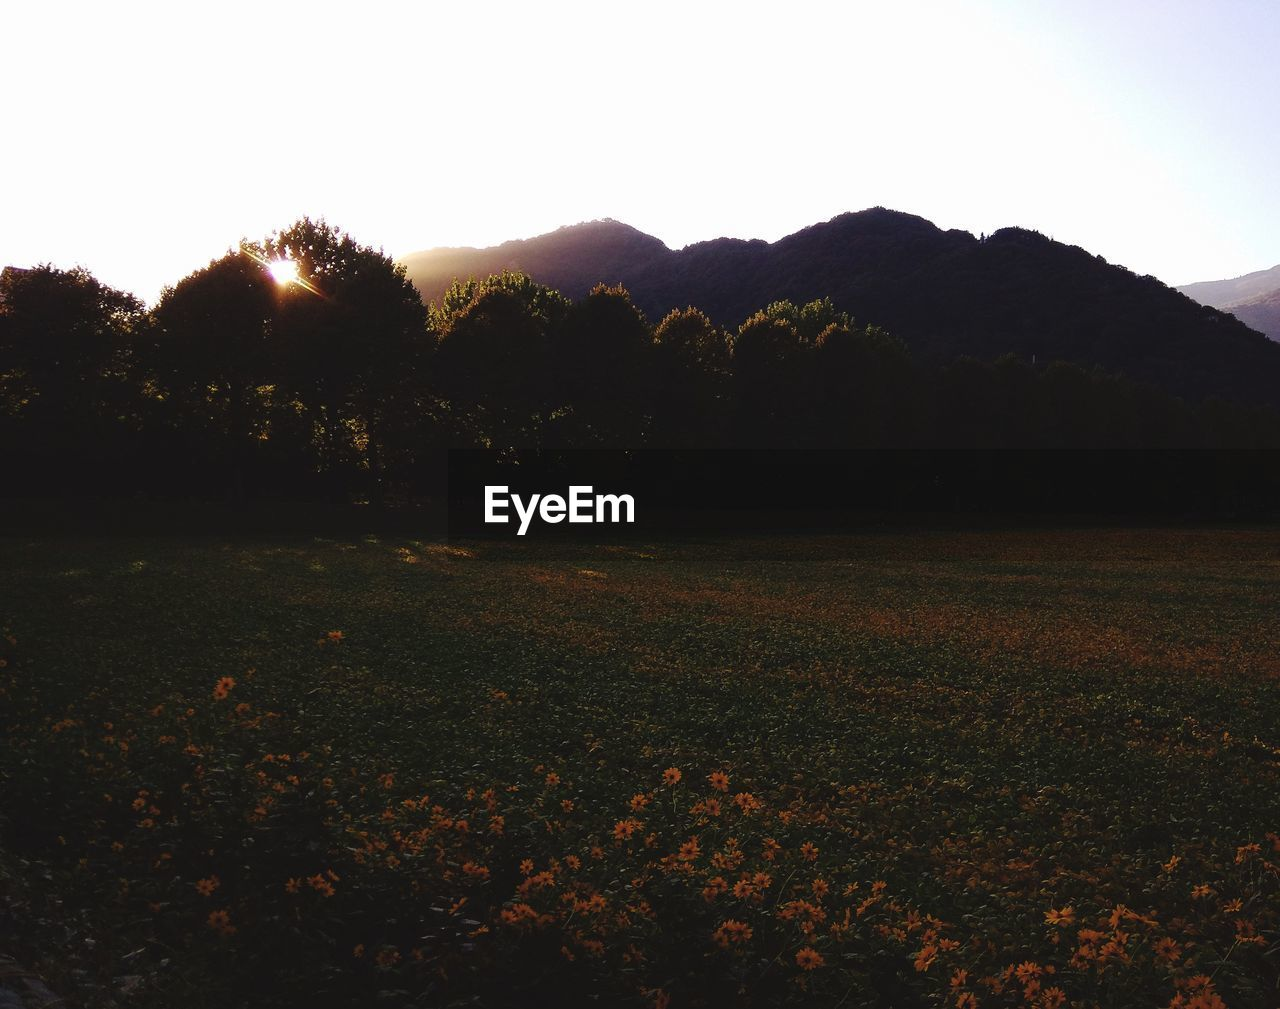 sky, beauty in nature, tranquility, tranquil scene, plant, scenics - nature, mountain, landscape, environment, nature, no people, sunset, land, tree, growth, field, non-urban scene, idyllic, mountain range, outdoors